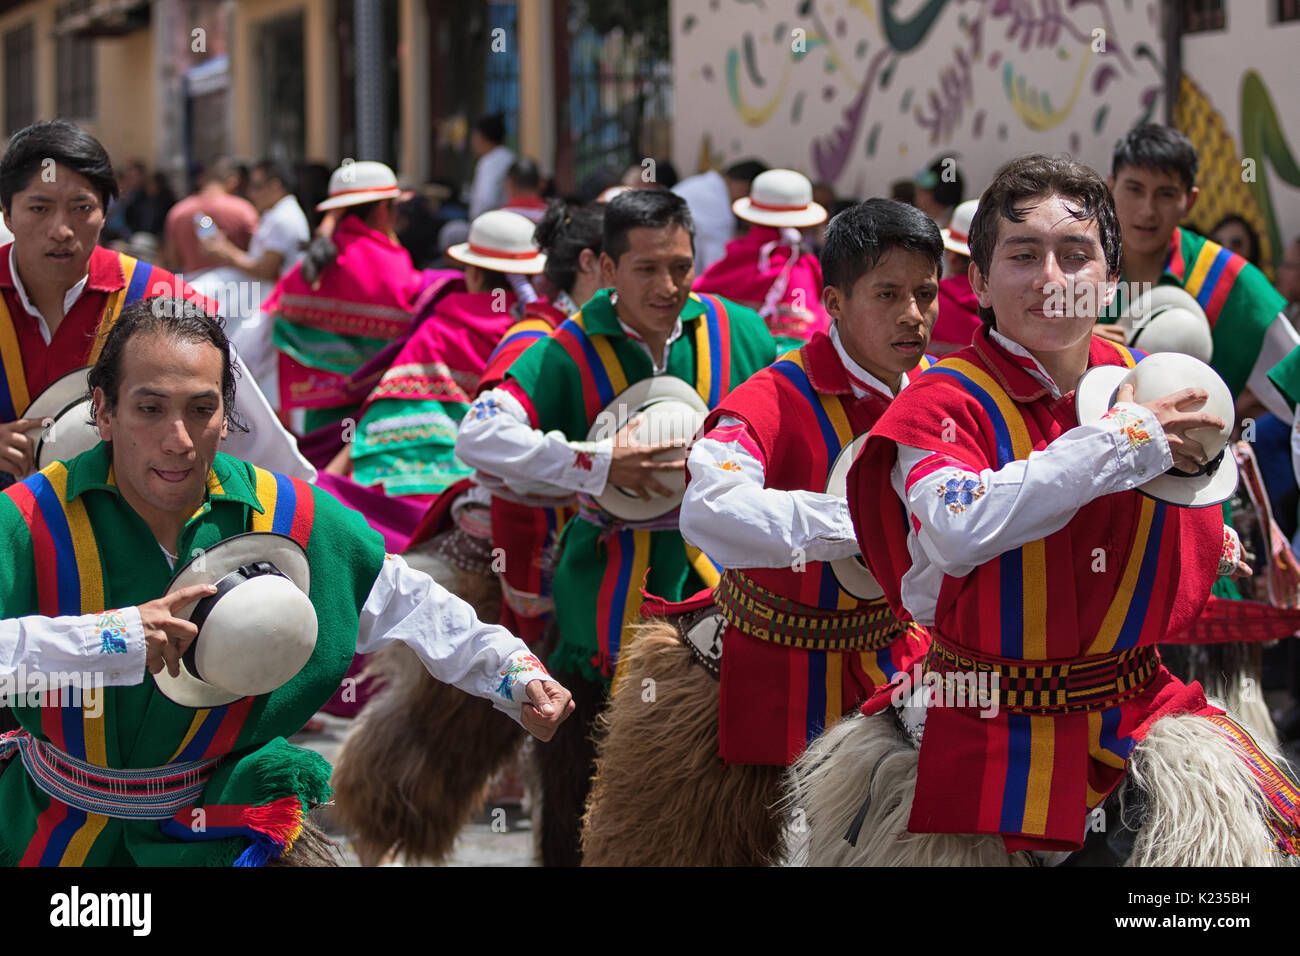 June 17, 2017 Pujili, Ecuador: male dancers holding their hats in the air at Corpus Christi festival - Stock Image